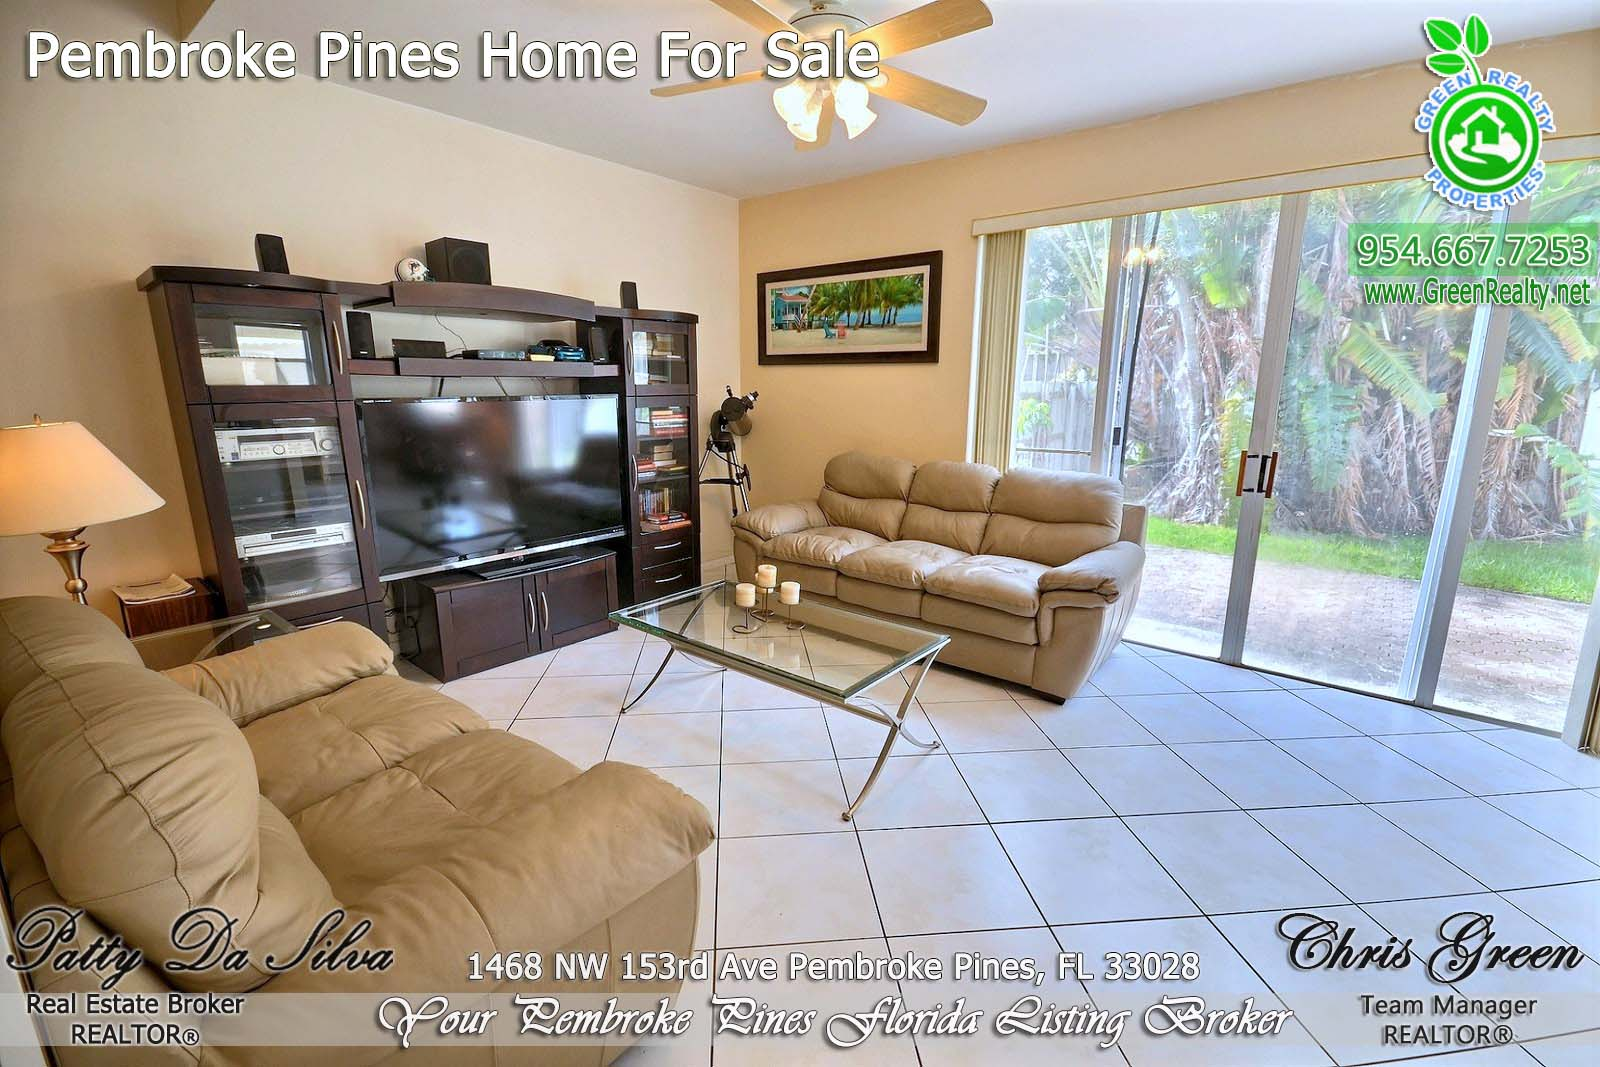 15 Homes For Sale in Pembroke Pines (4)